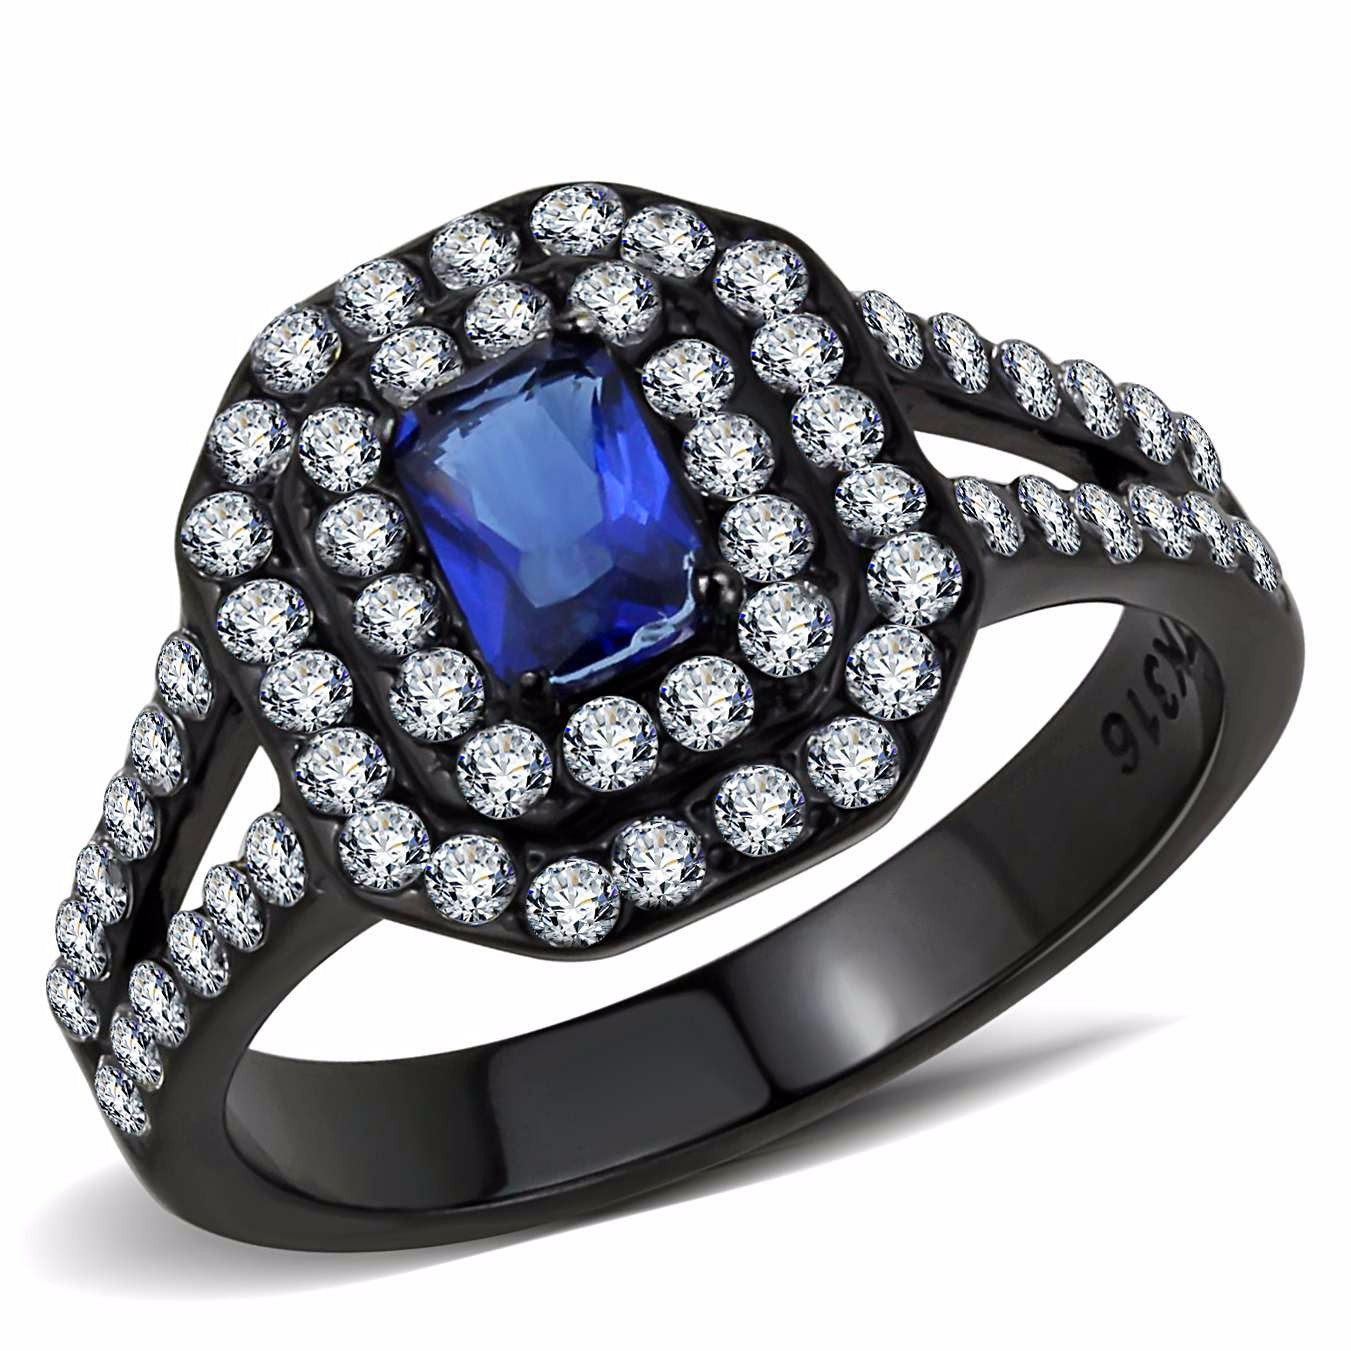 6x4mm Emerald Cut Deep Blue Sapphire CZ Black IP Stainless Steel Engagement Ring - LA NY Jewelry